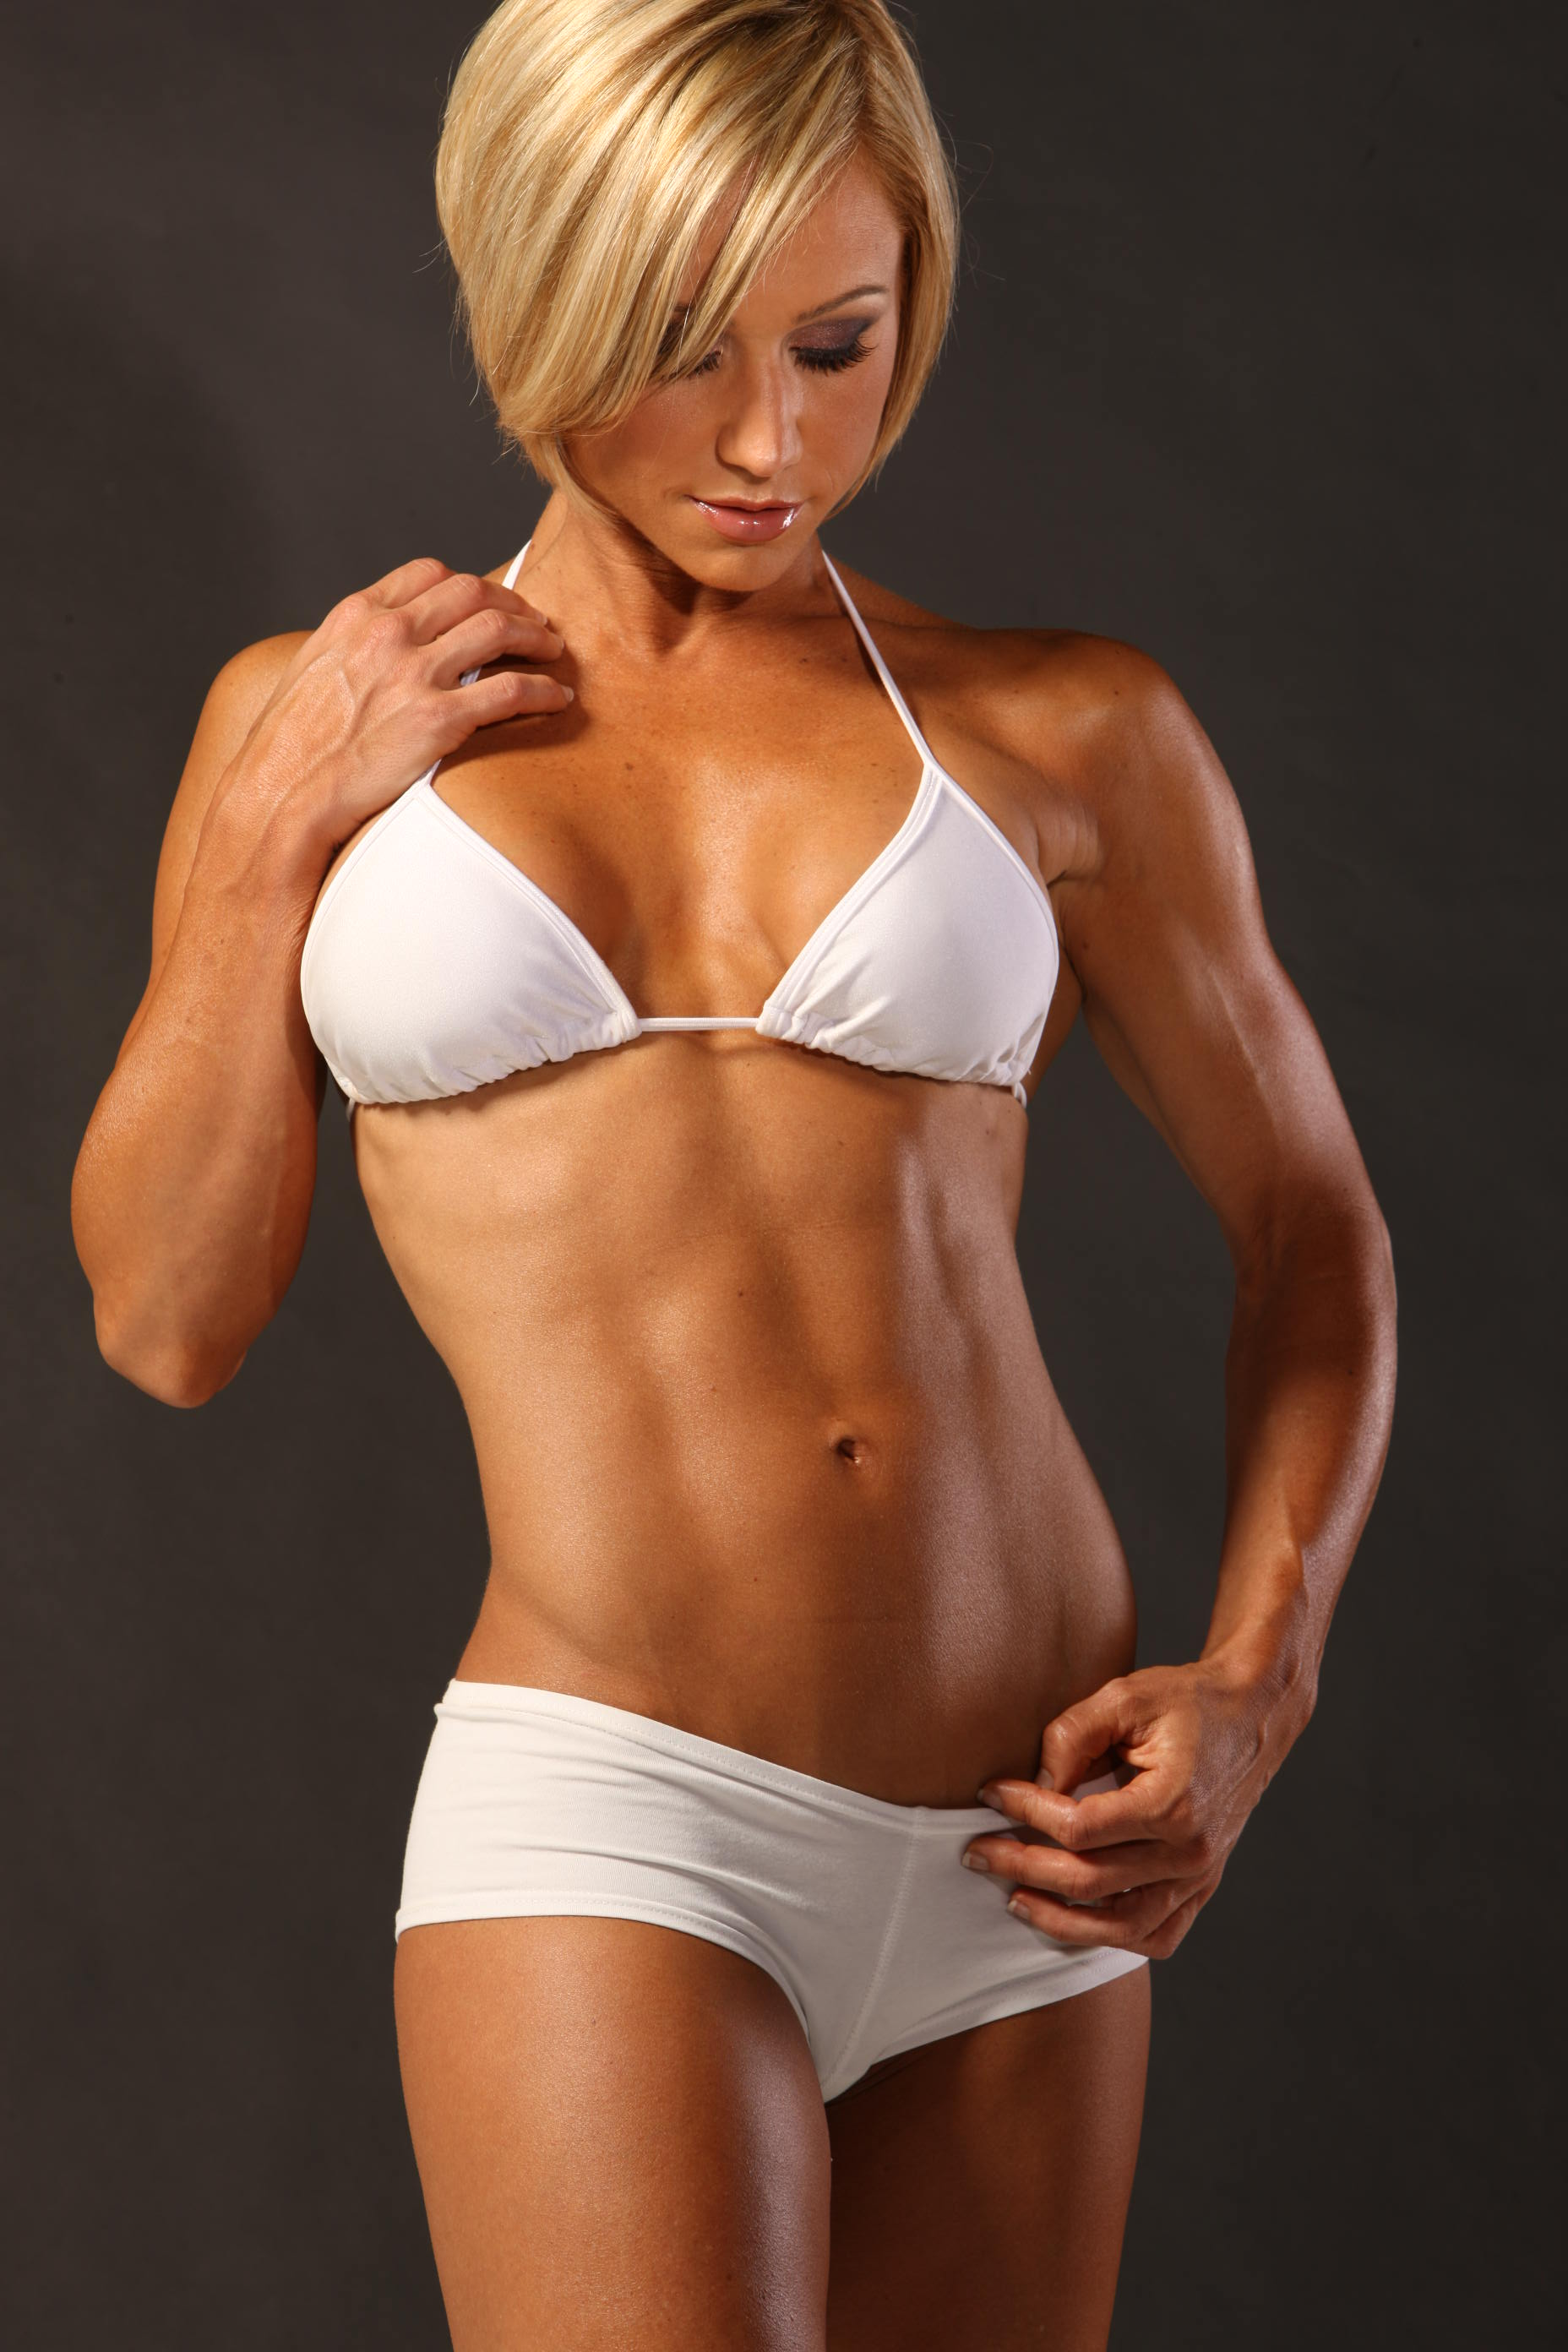 anabolic steroids females